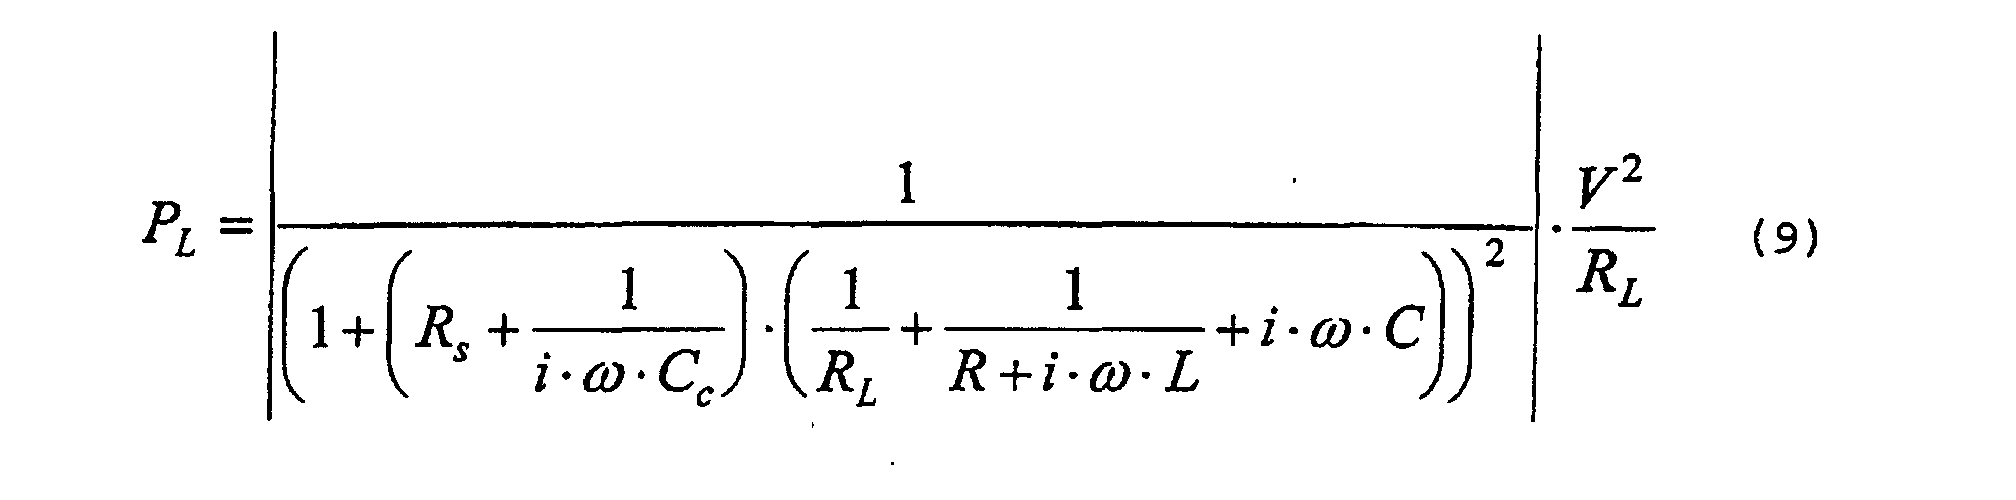 Circuits By Stray Fields High When Pair Defined As Net Reactance Of